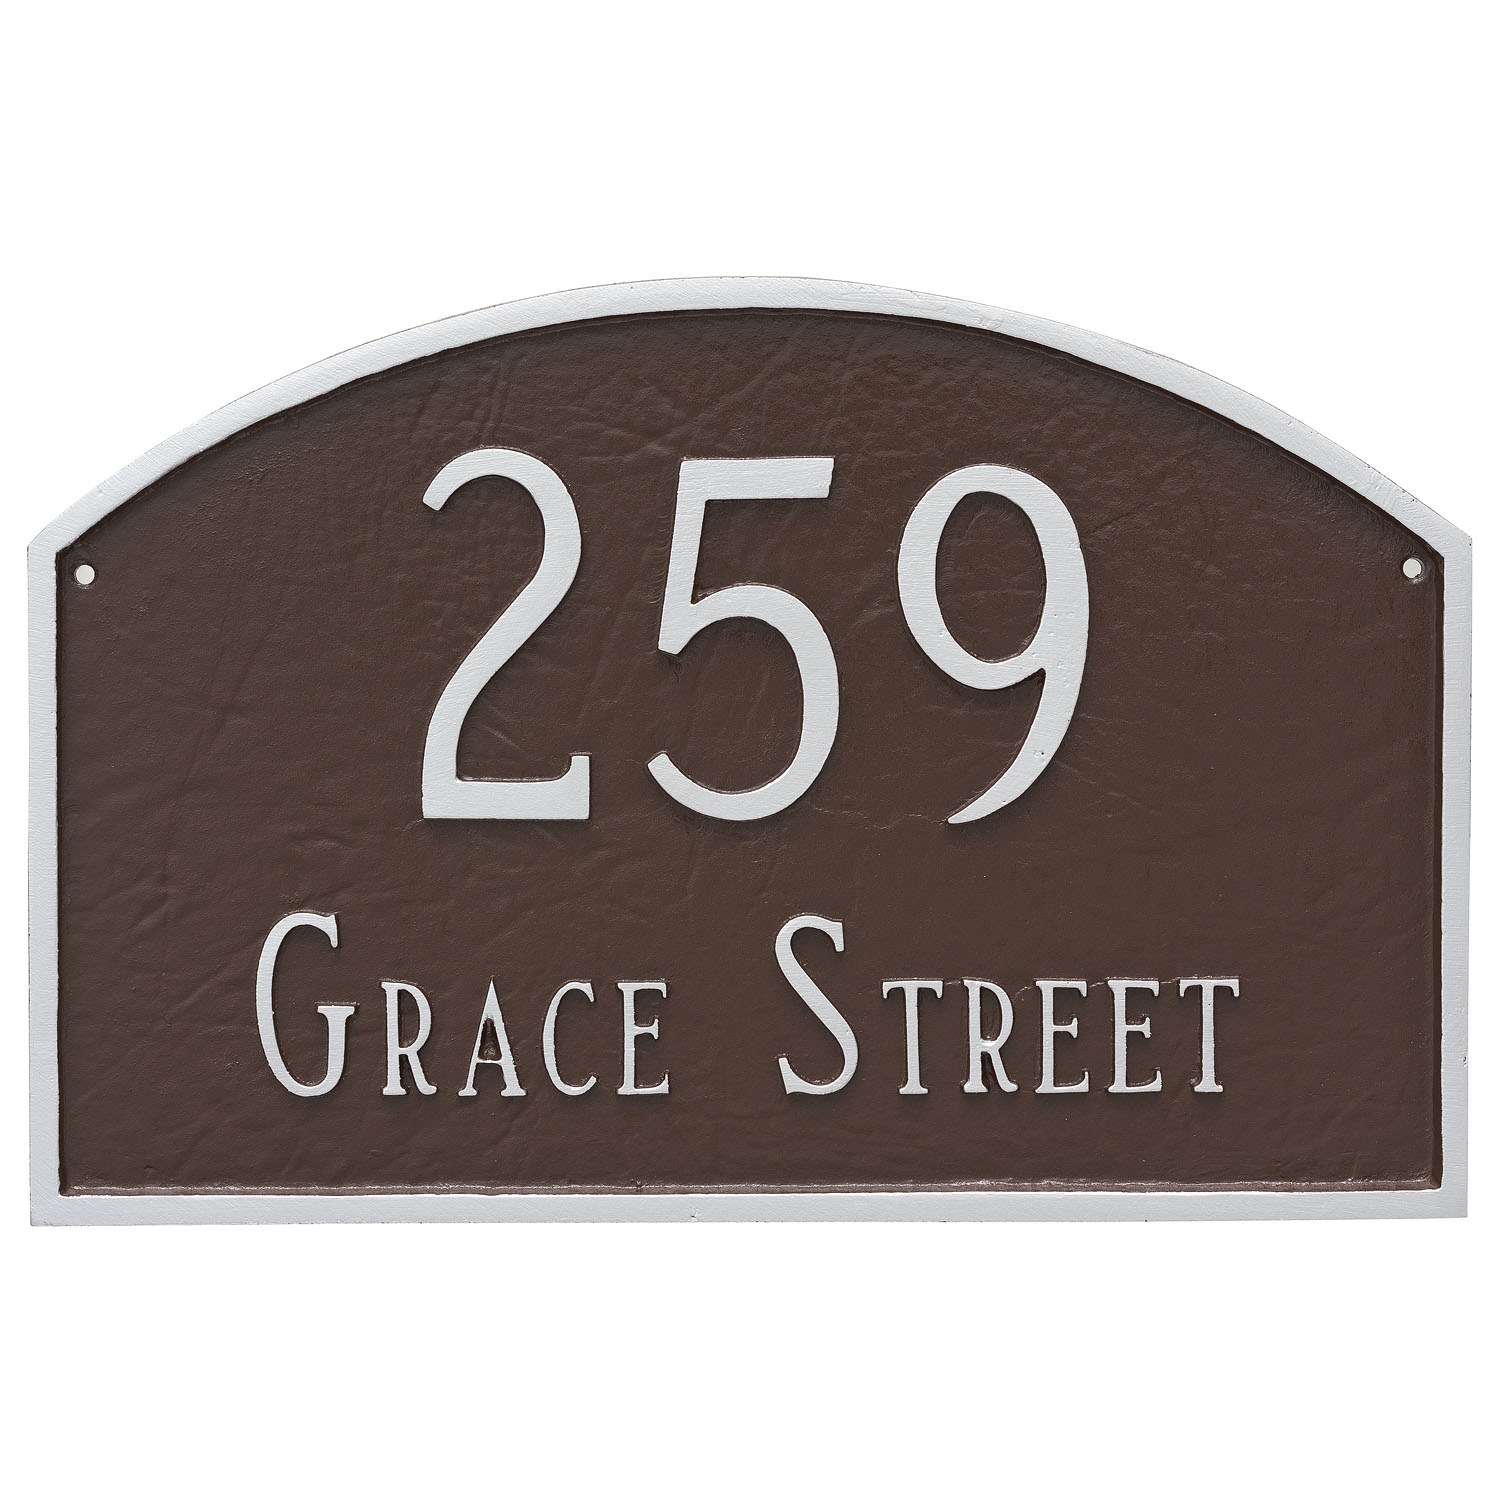 Prestige Arch Address Plaque - Standard - 2 Line